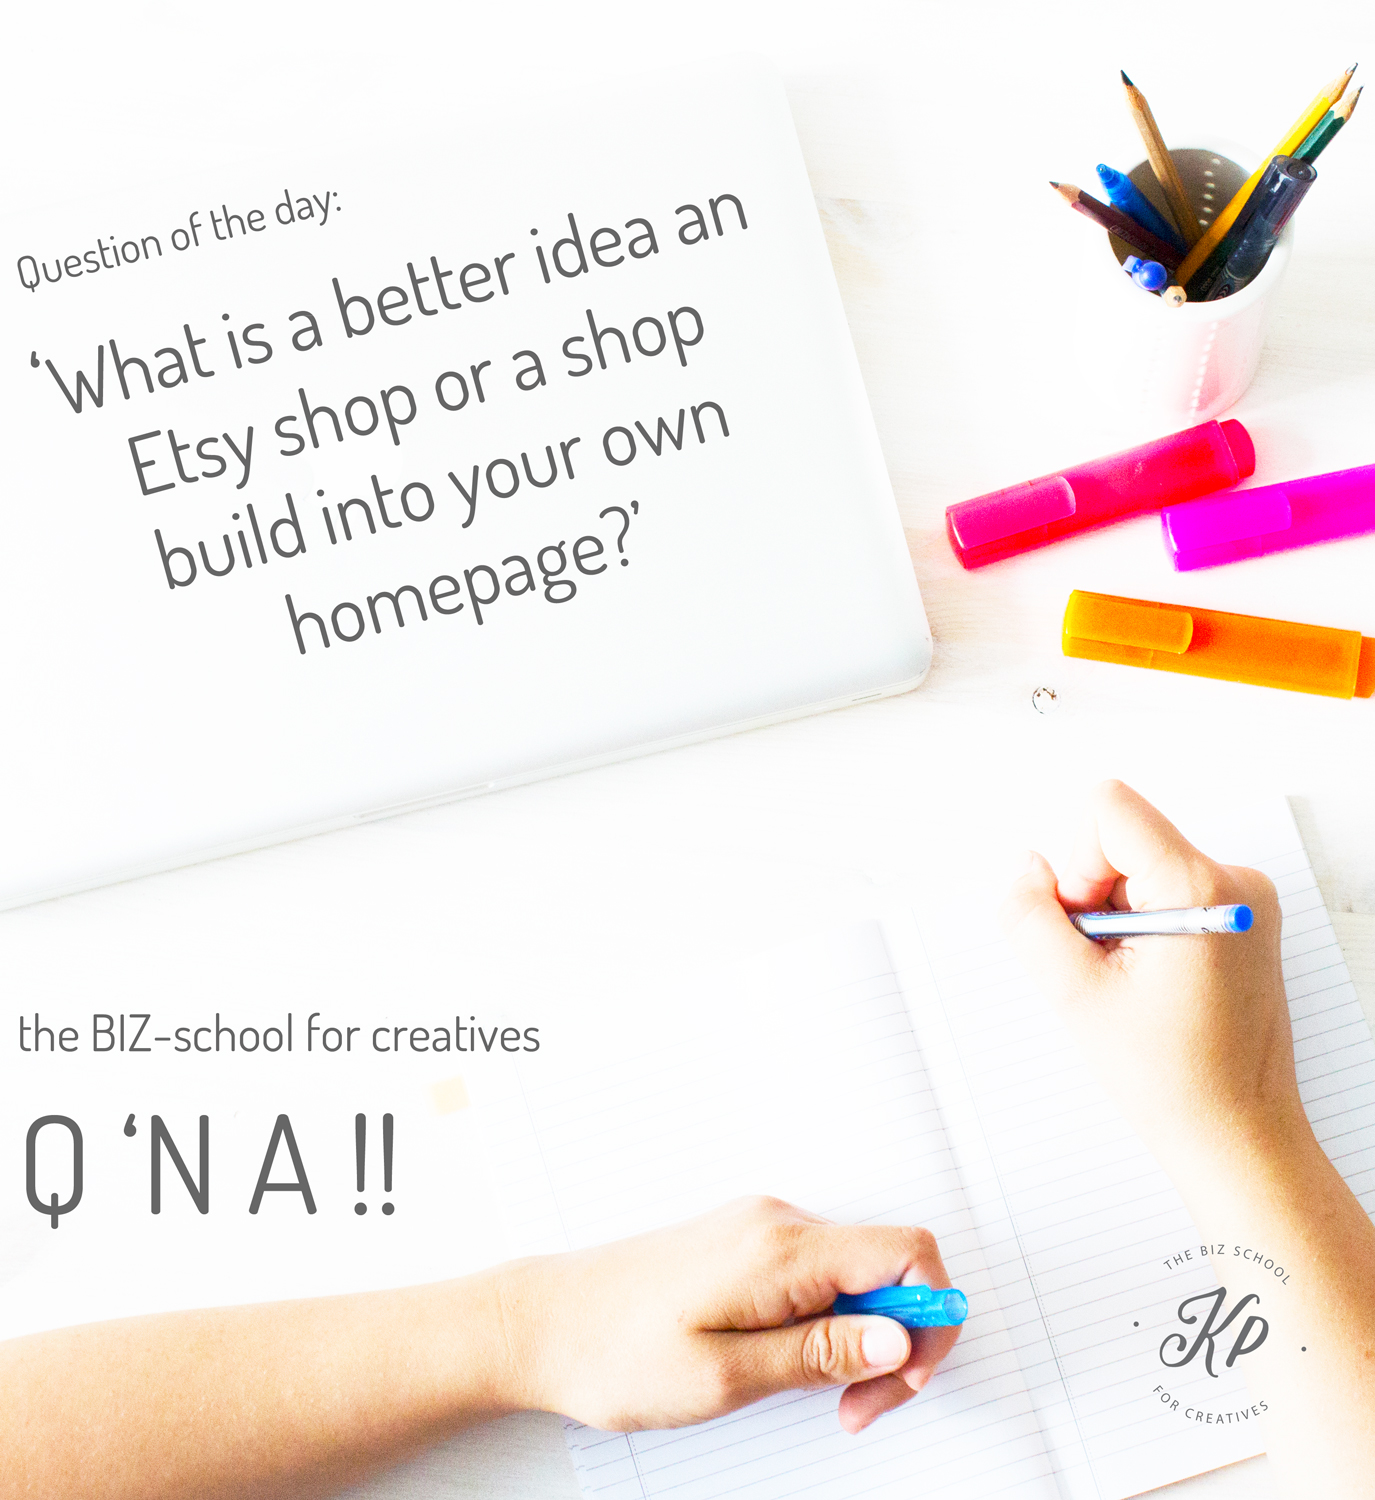 the BIZ-school for creatives Q 'N A, Question of the day: 'What is a better idea an Etsy shop or a shop build into your own homepage?' Read the full answer at www.kerstinpressler.com